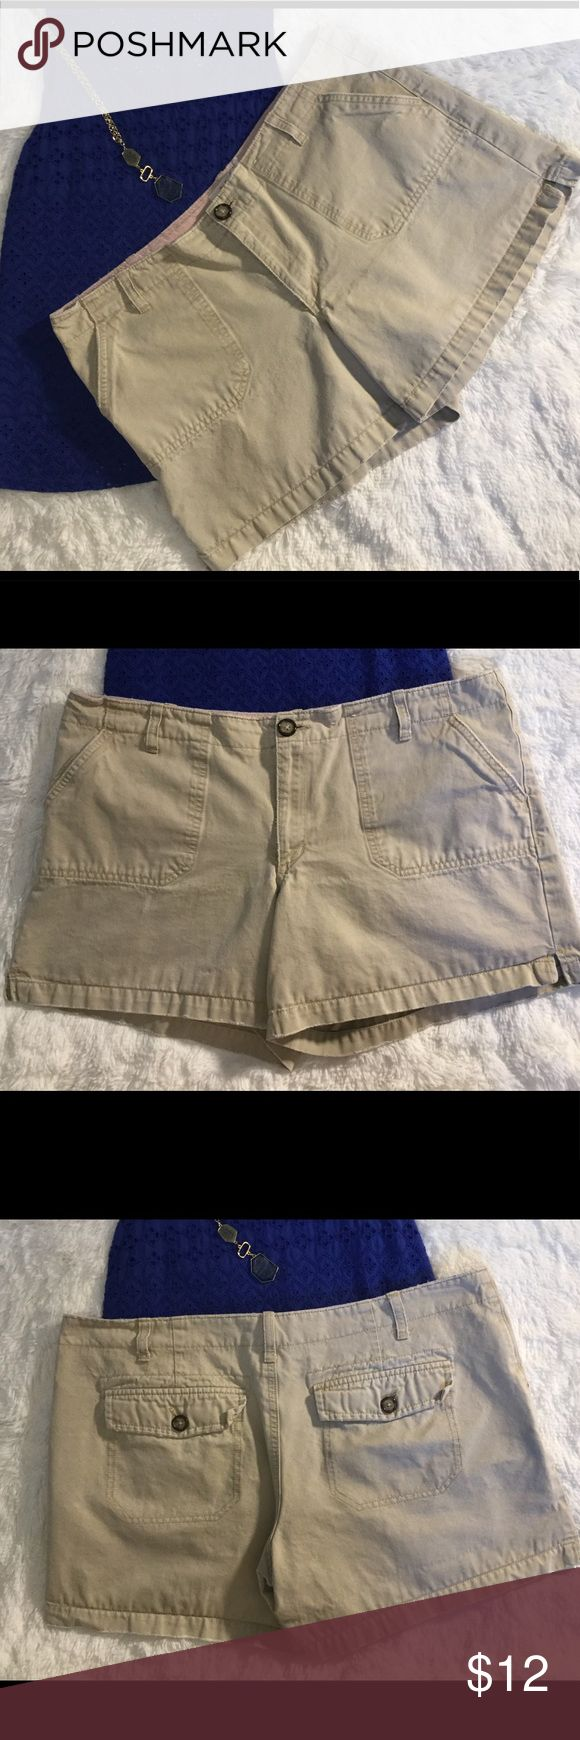 Women's khaki shorts size 12 Old Navy distressed These stylish comfy shorts measure approx 36x5 they are a women's size 14 in excellent condition free from any rips, stains or discoloration and comes from a smoke free home.  Buy with confidence I am a top rated seller, mentor and fast shipper.  Don't forget to bundle and save.  Thank you. Old Navy Shorts